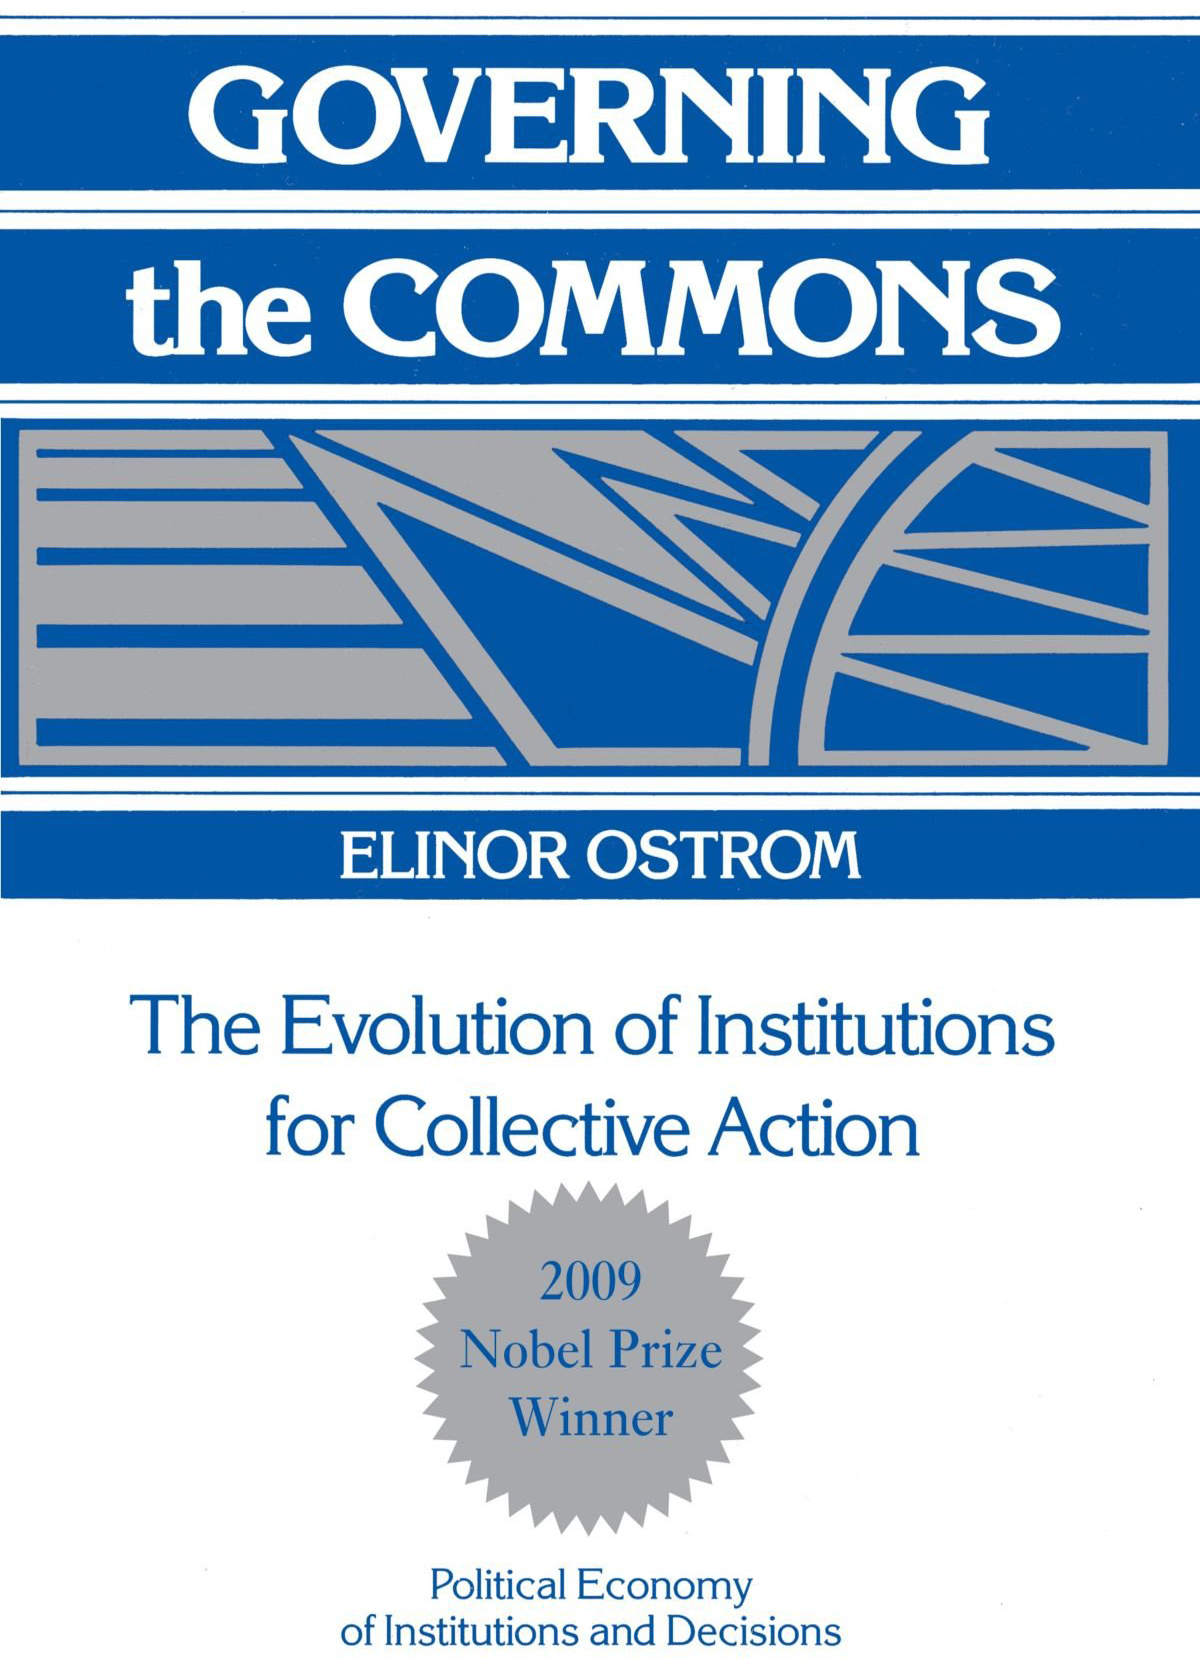 Ostrom, Elinor - Governing the Commons.jpg